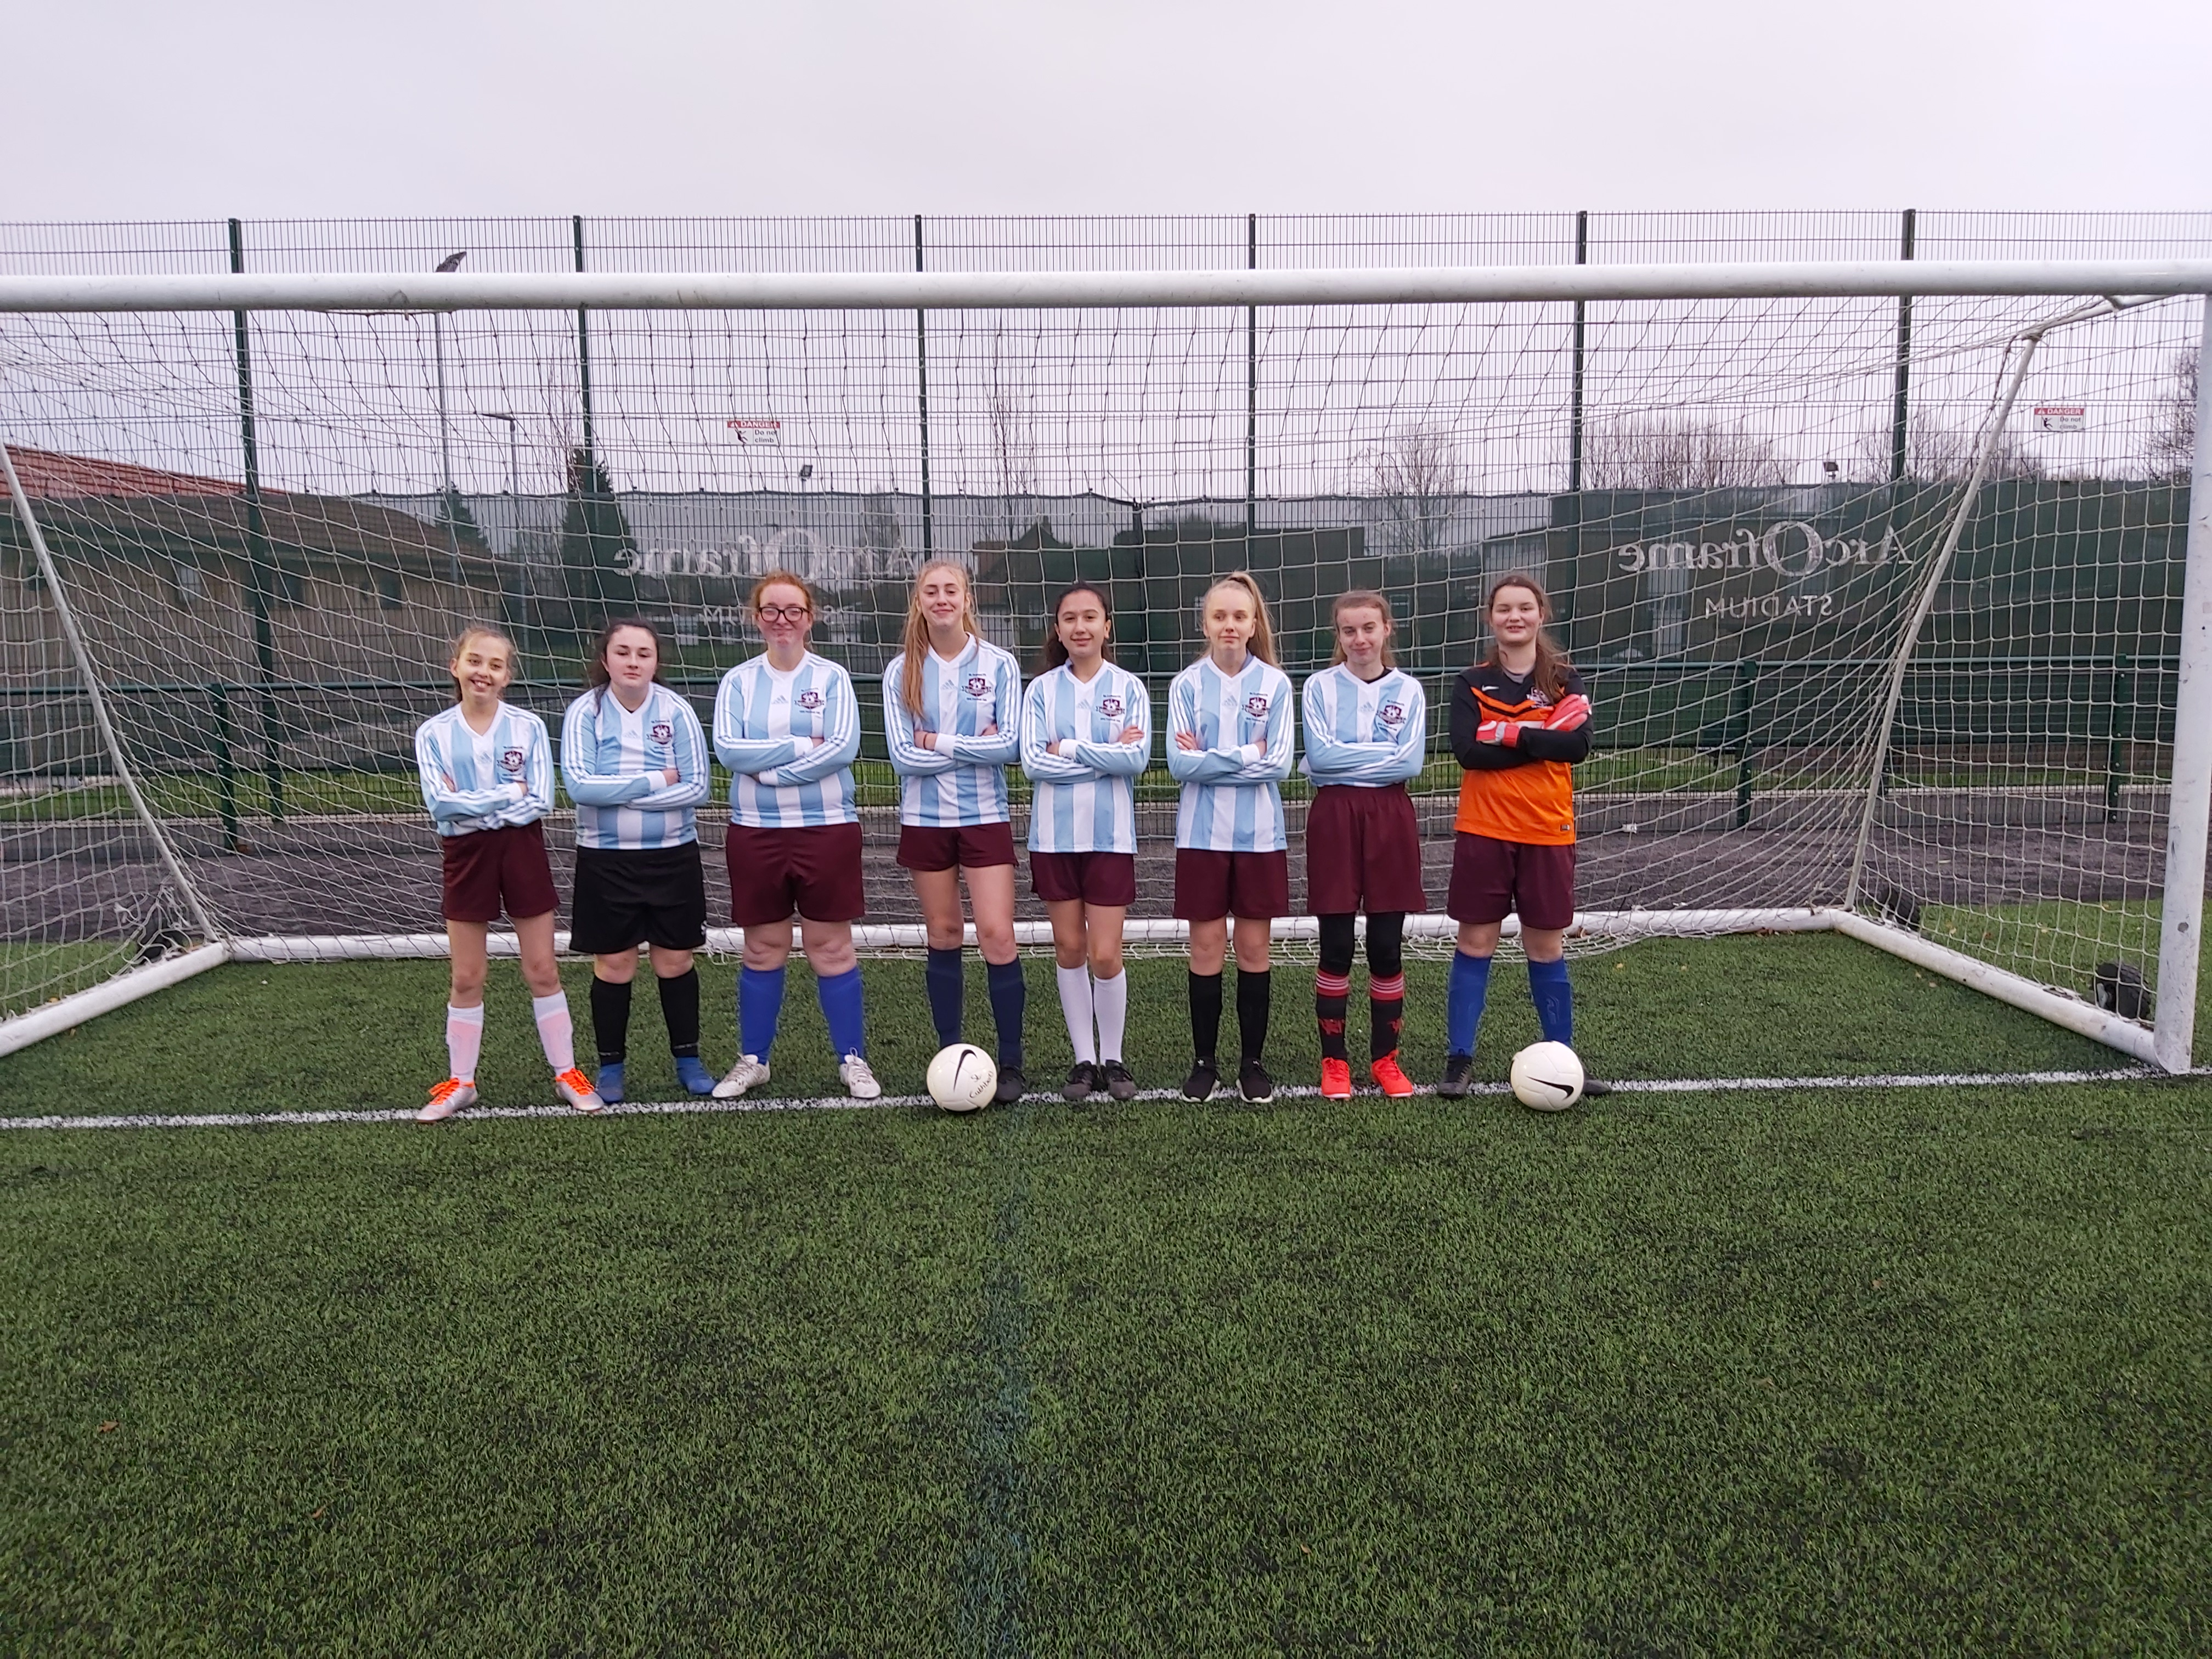 Year 9 and 10 St. Cuthbert's Cyclones Girls Football Team